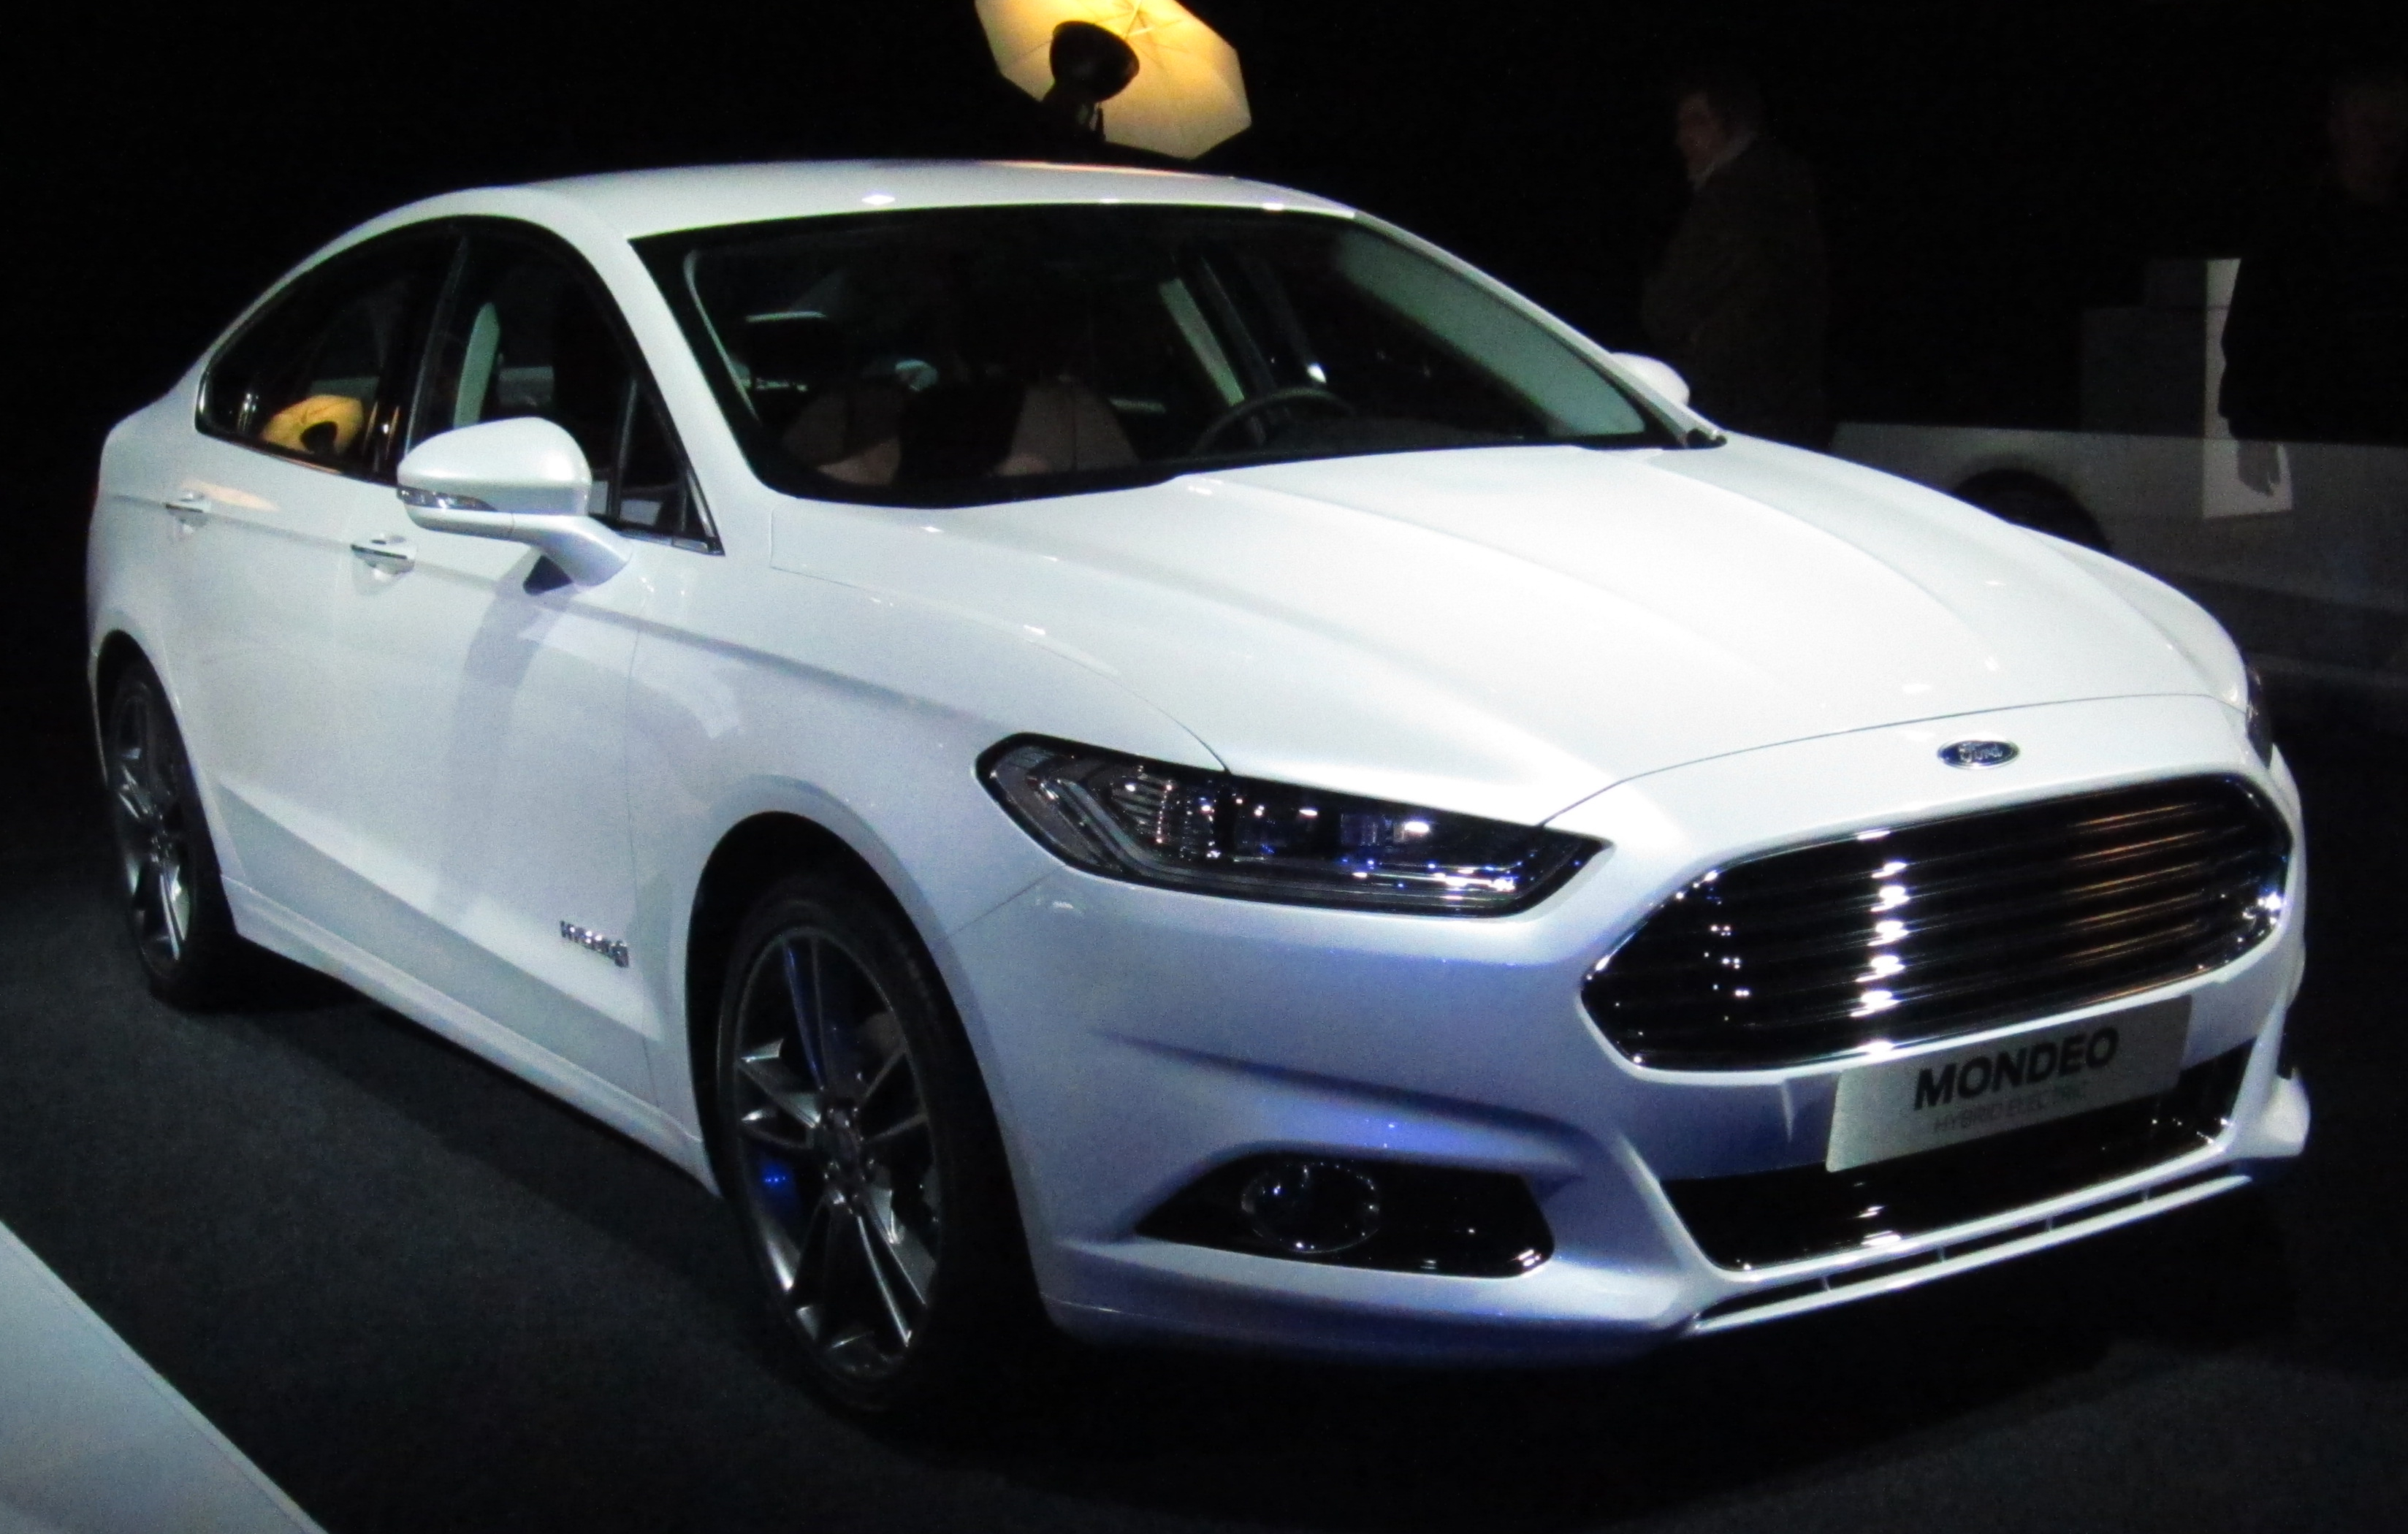 FORD Mondeo car technical data. Car specifications. Vehicle fuel